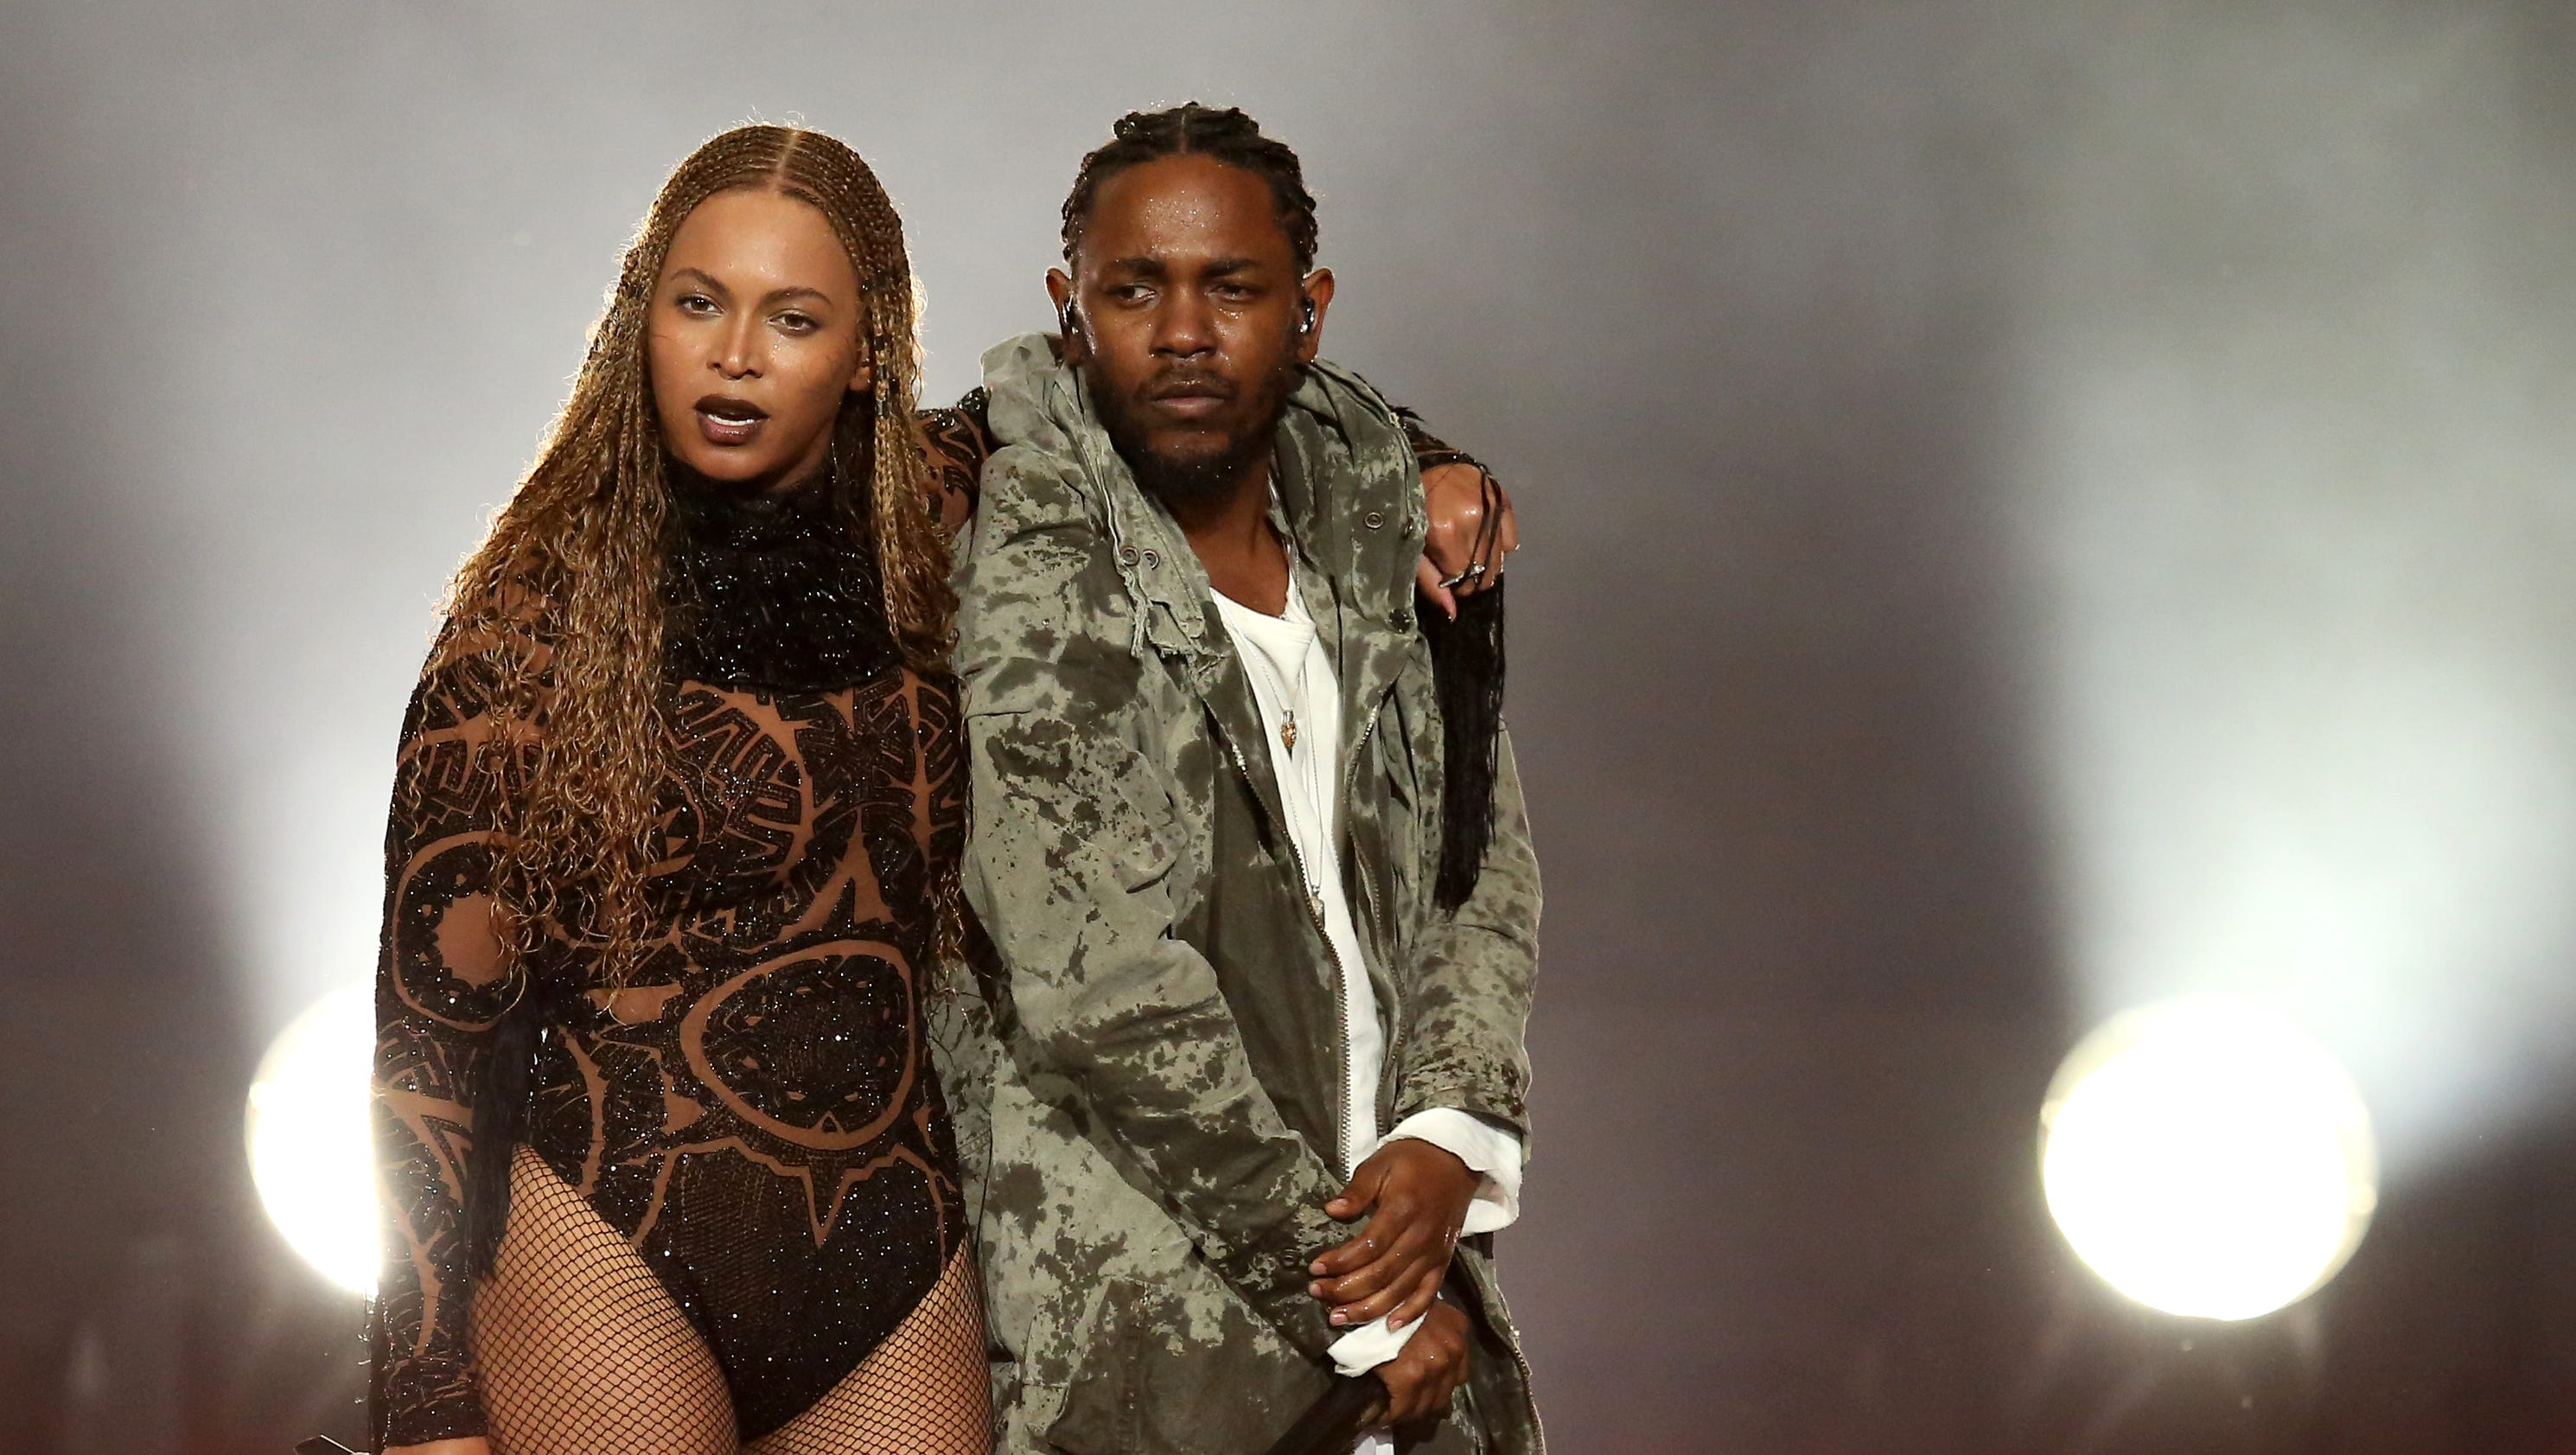 Beyoncé, Kendrick Lamar open BET Awards with blazing rendition of 'Freedom'